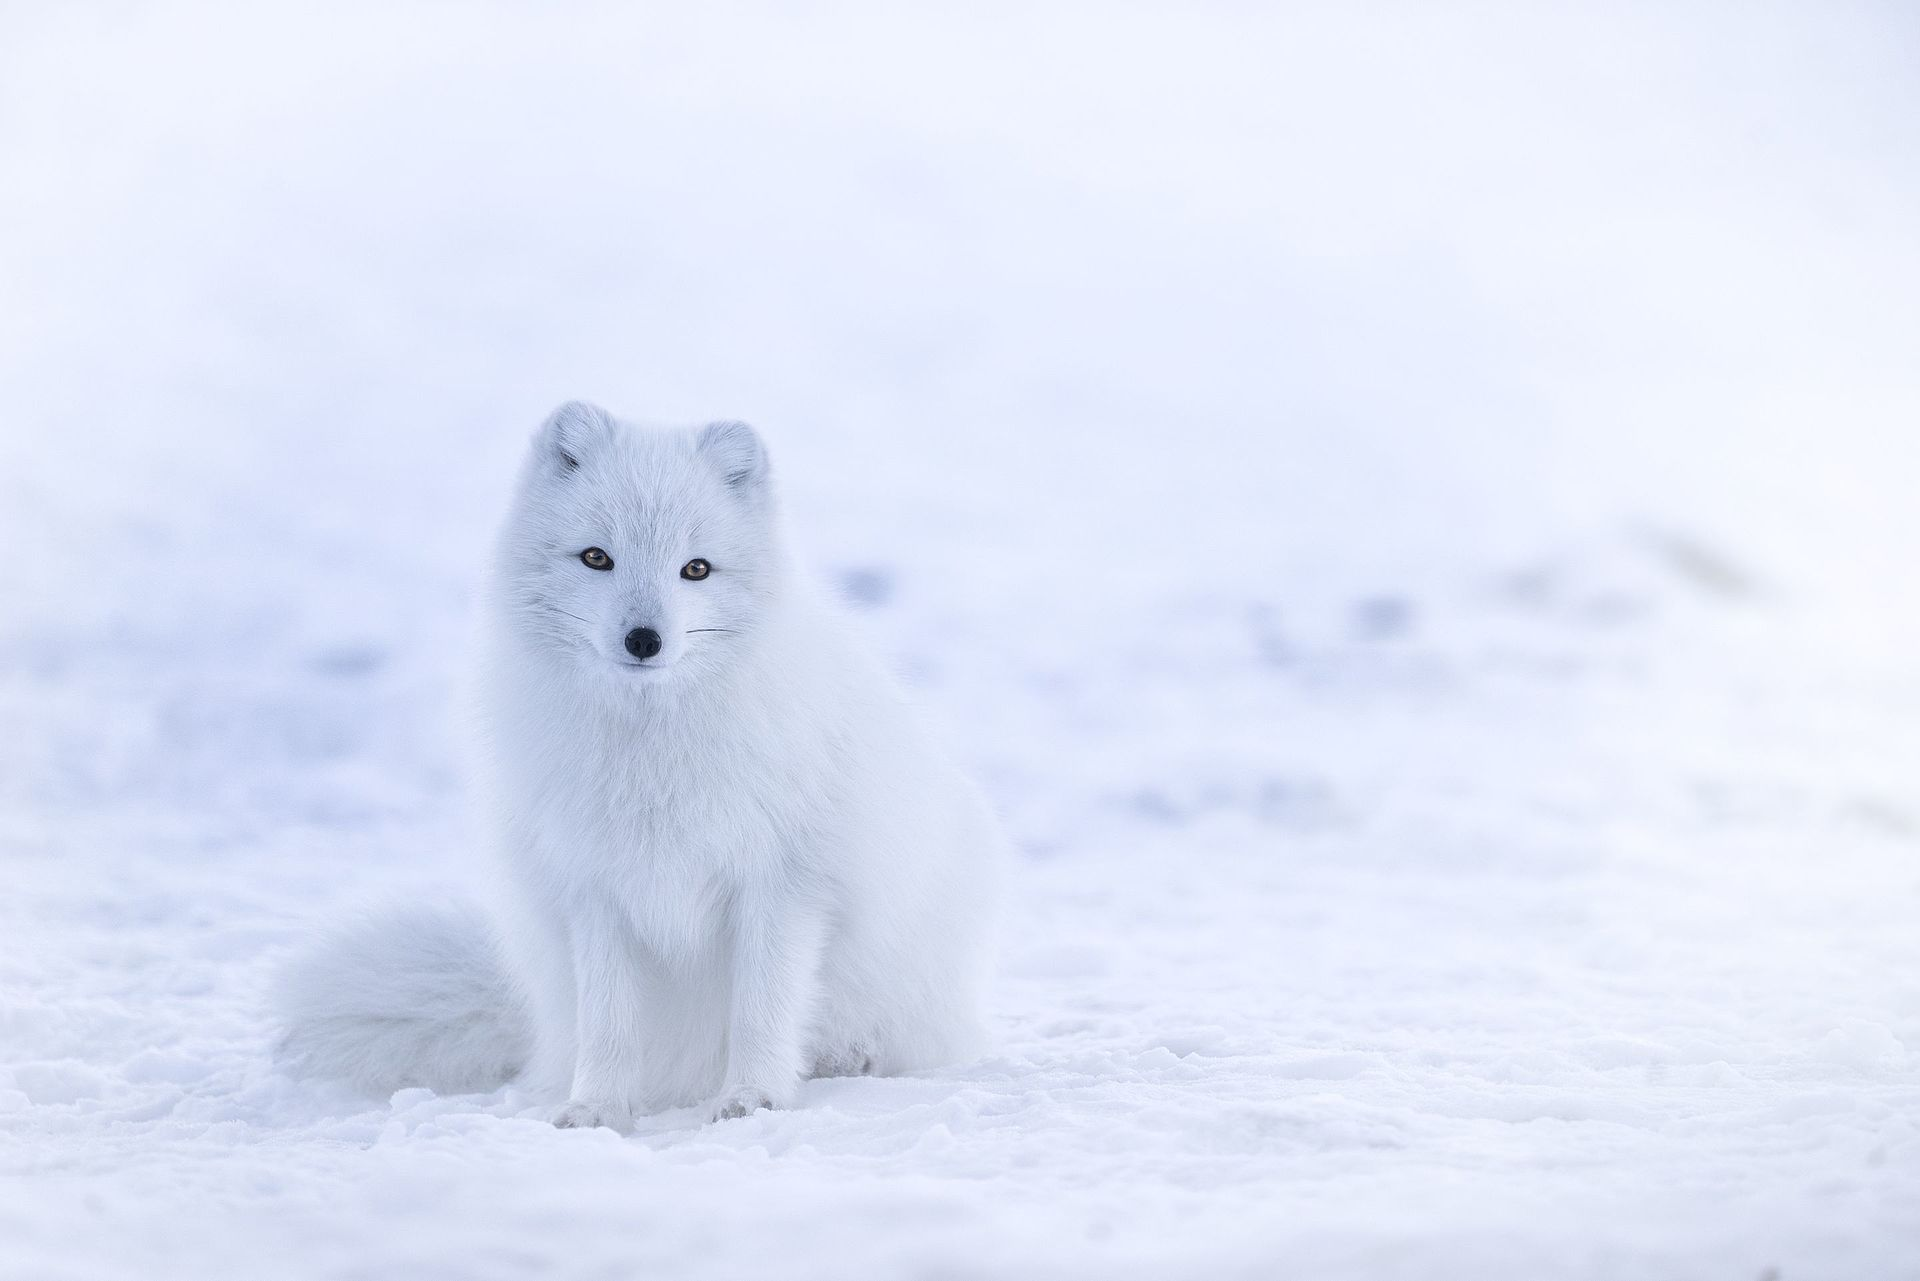 The Arctic Foxes In Icelande In Two Colour Morphs, White And Blue  White Foxes Change Their Coatpletely Between Seasons, Going From Snowwhite  In